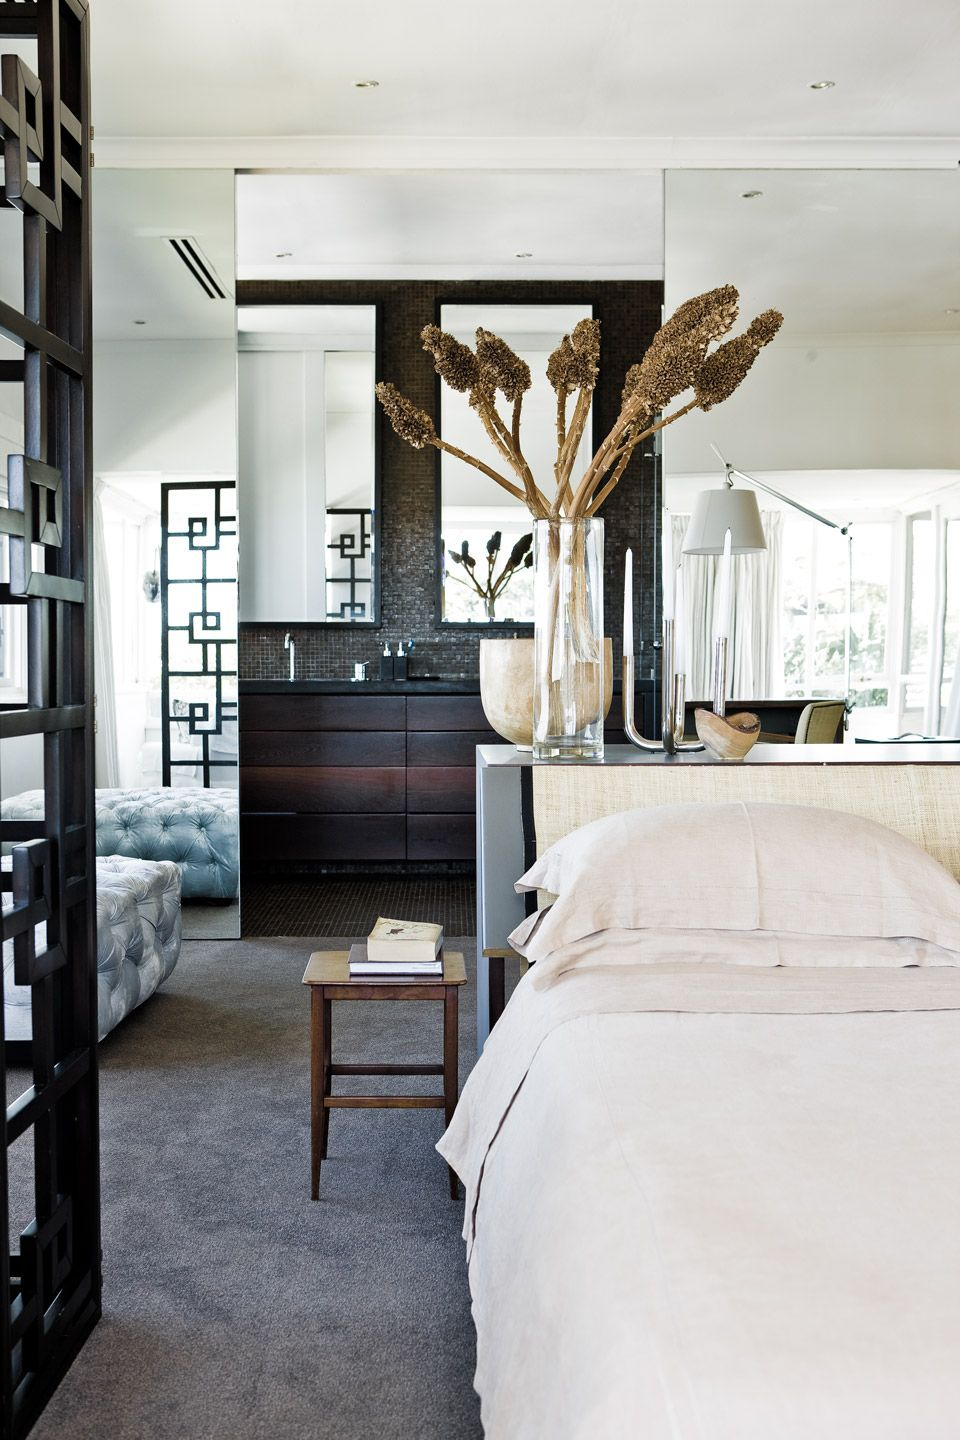 Bedroom Decor South Africa dark wood and tile bath behind mirrored wall in south african home